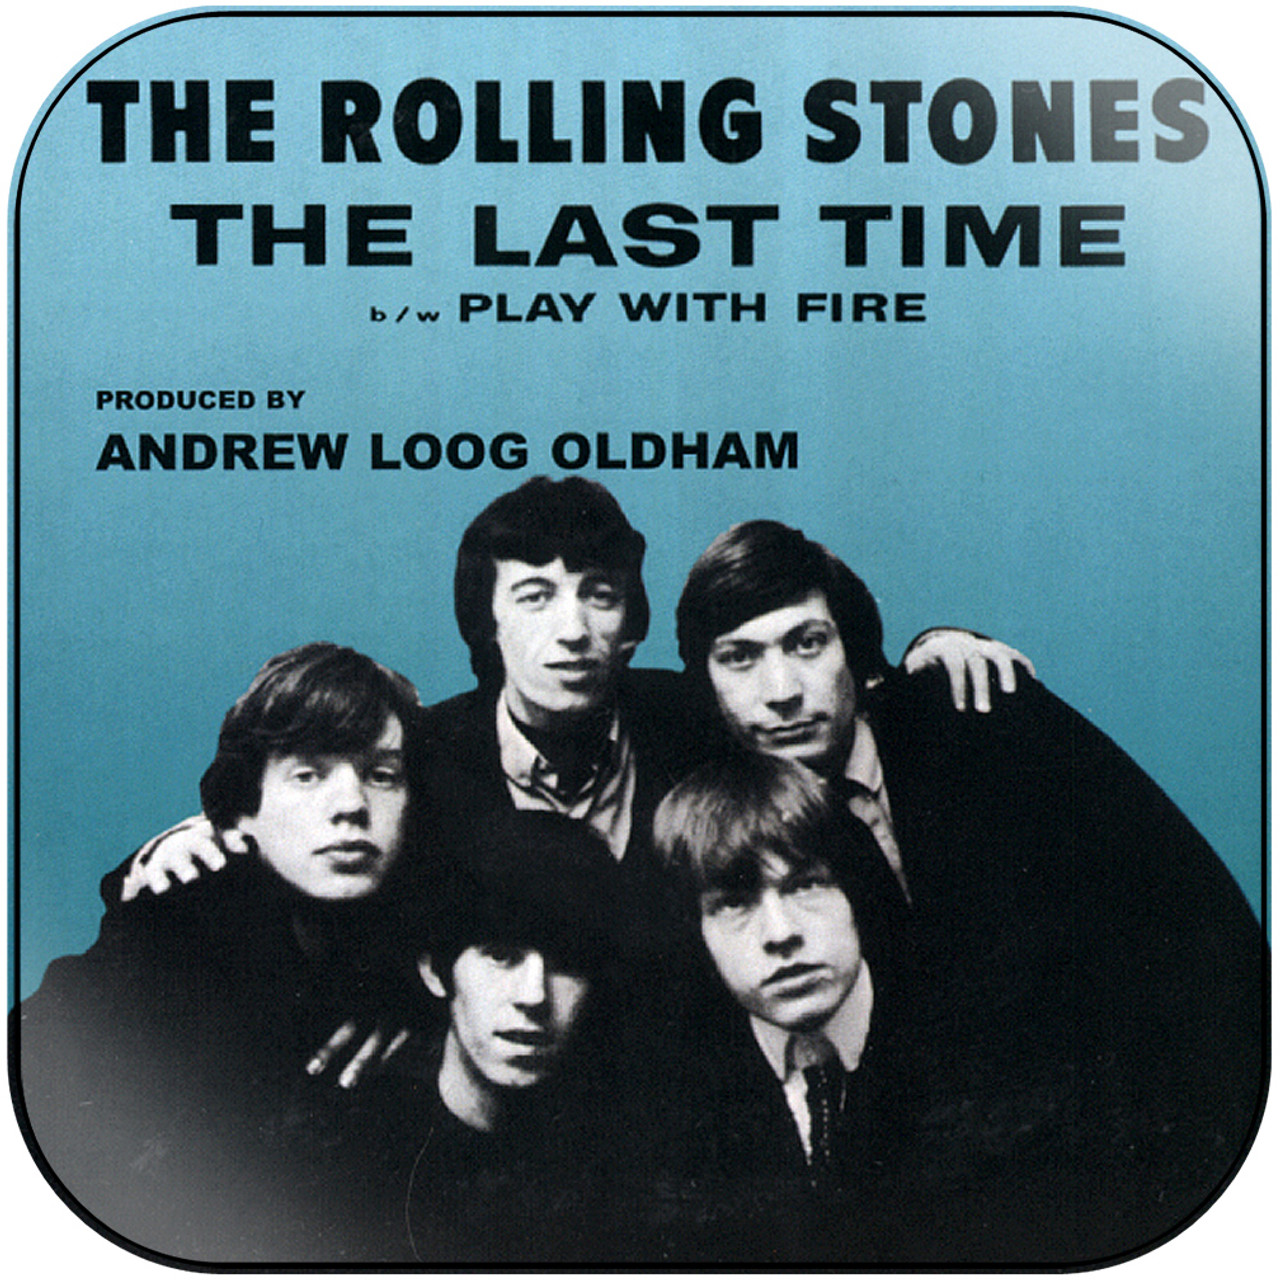 The Rolling Stones The Last Time Play With Fire 1 Album Cover Sticker Album Cover Sticker